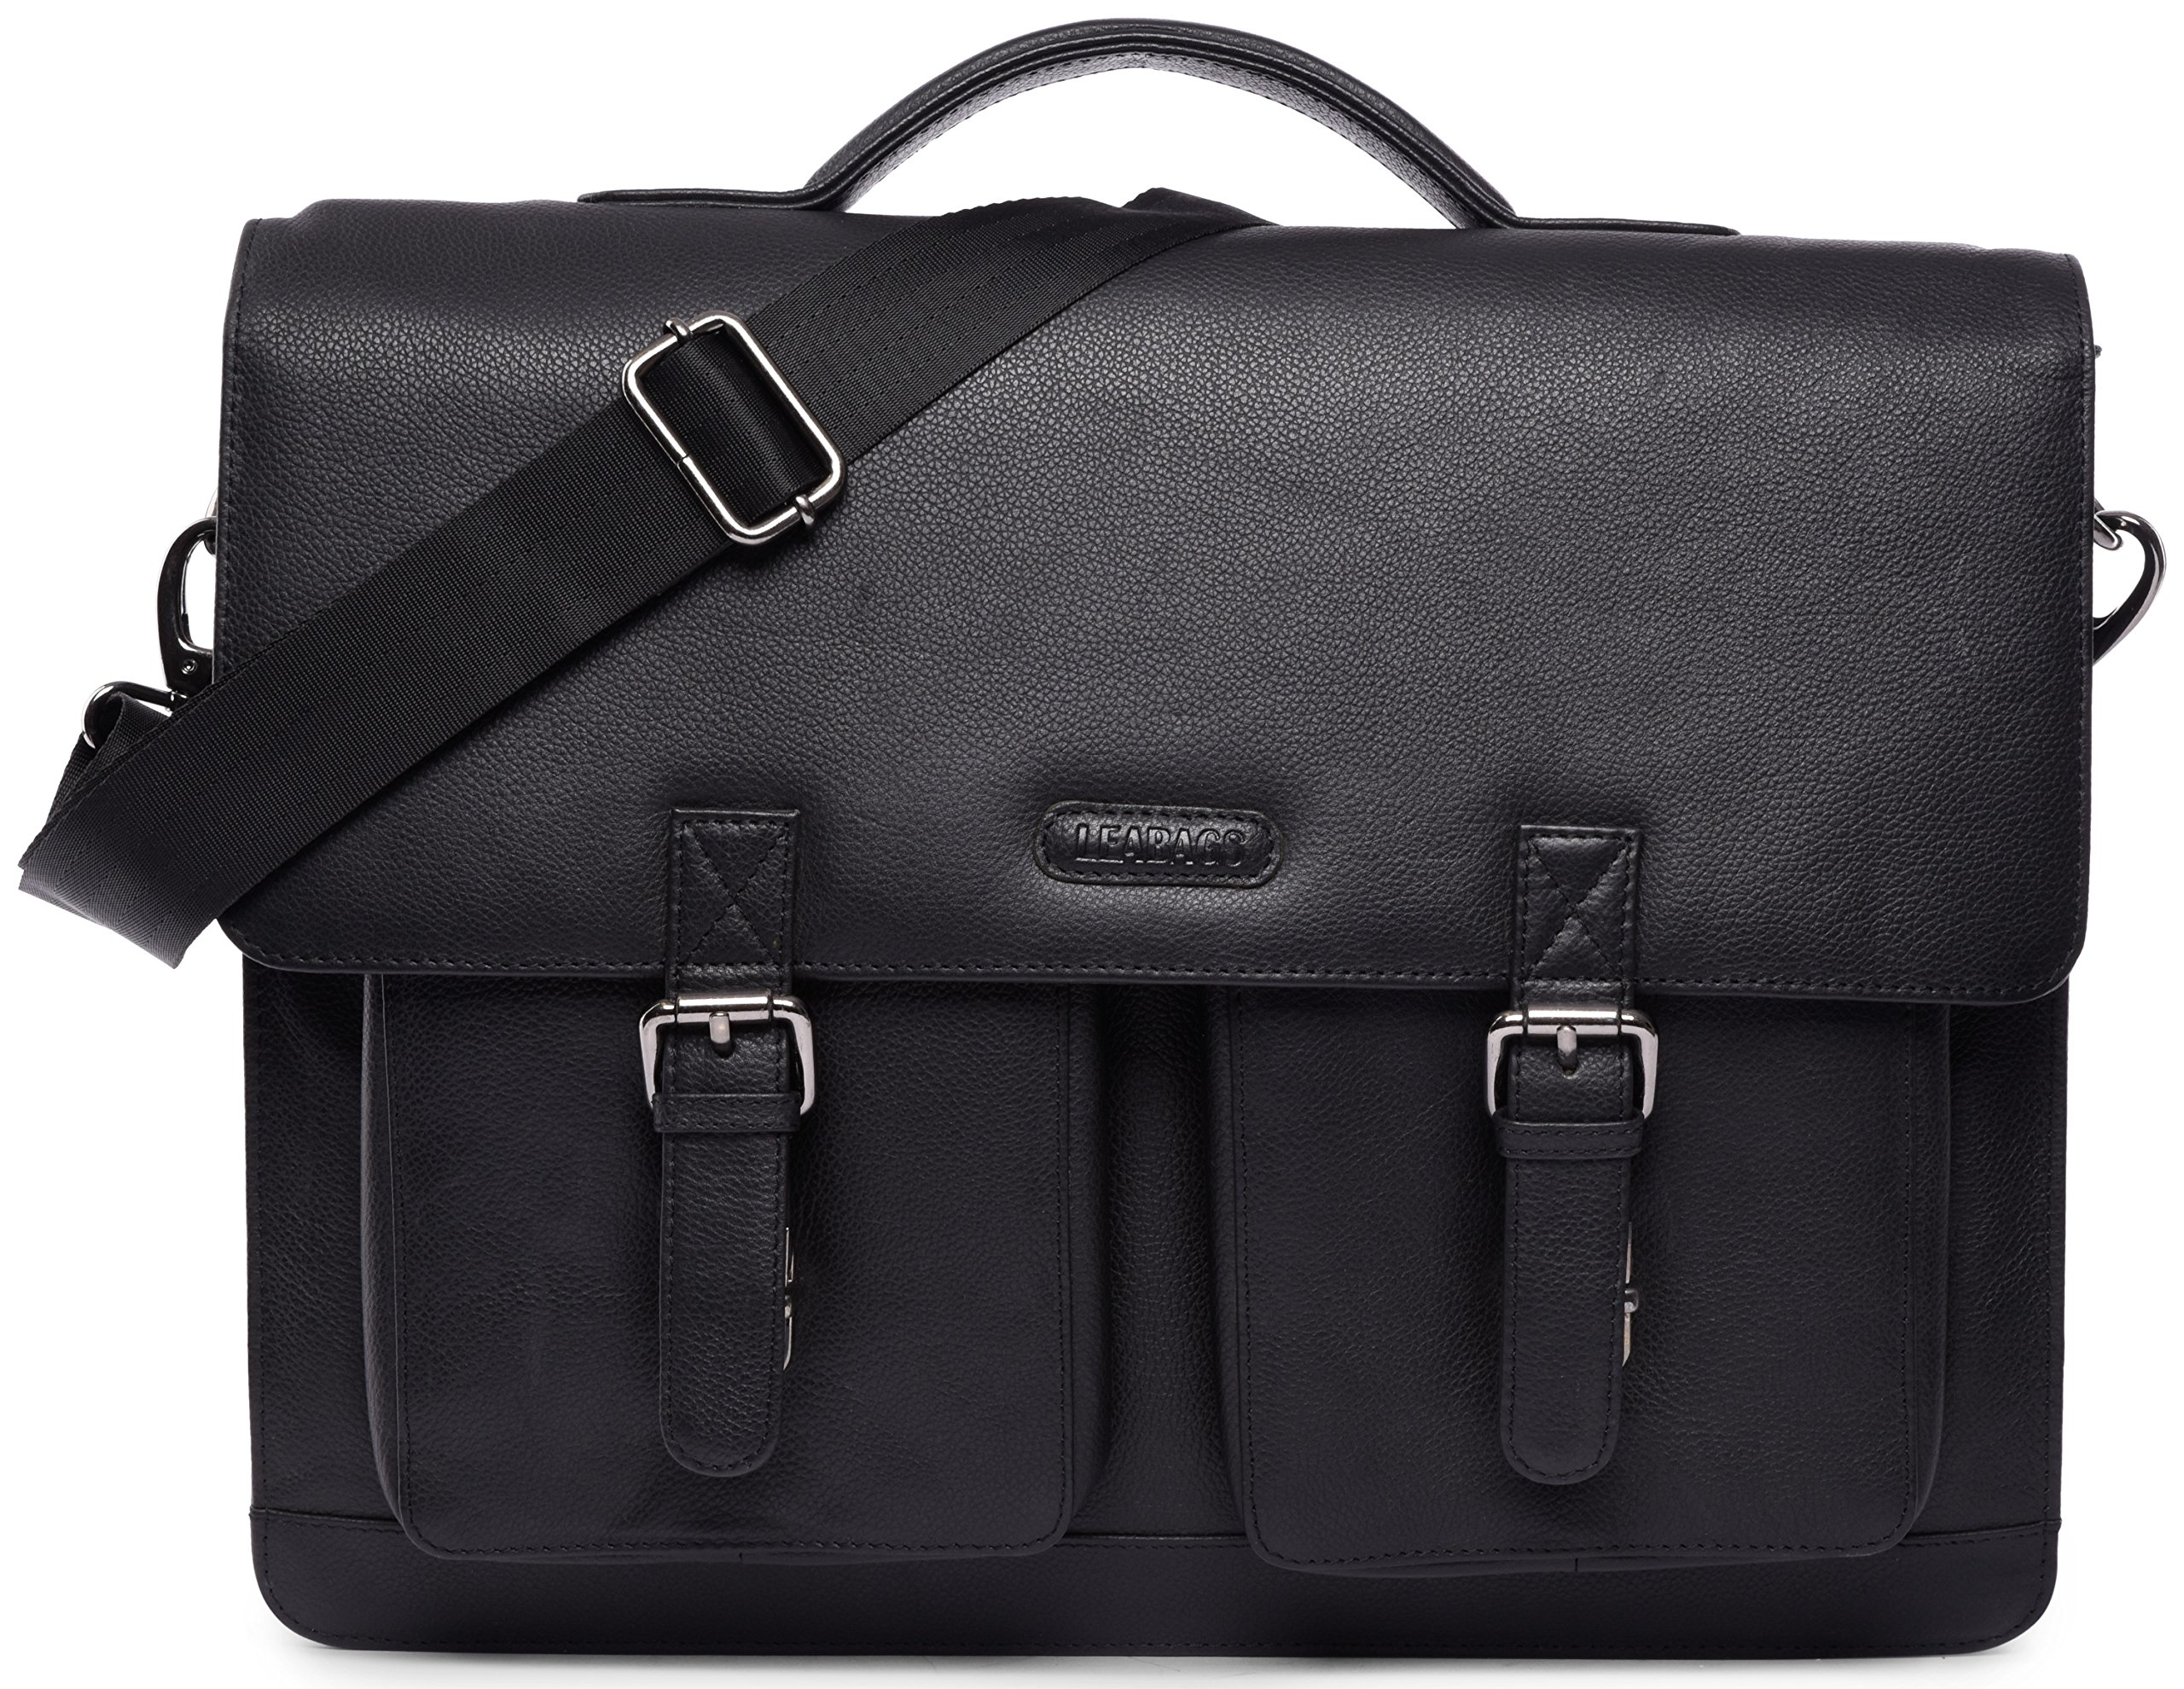 LEABAGS Miami genuine buffalo leather briefcase in vintage style - OnyxBlack